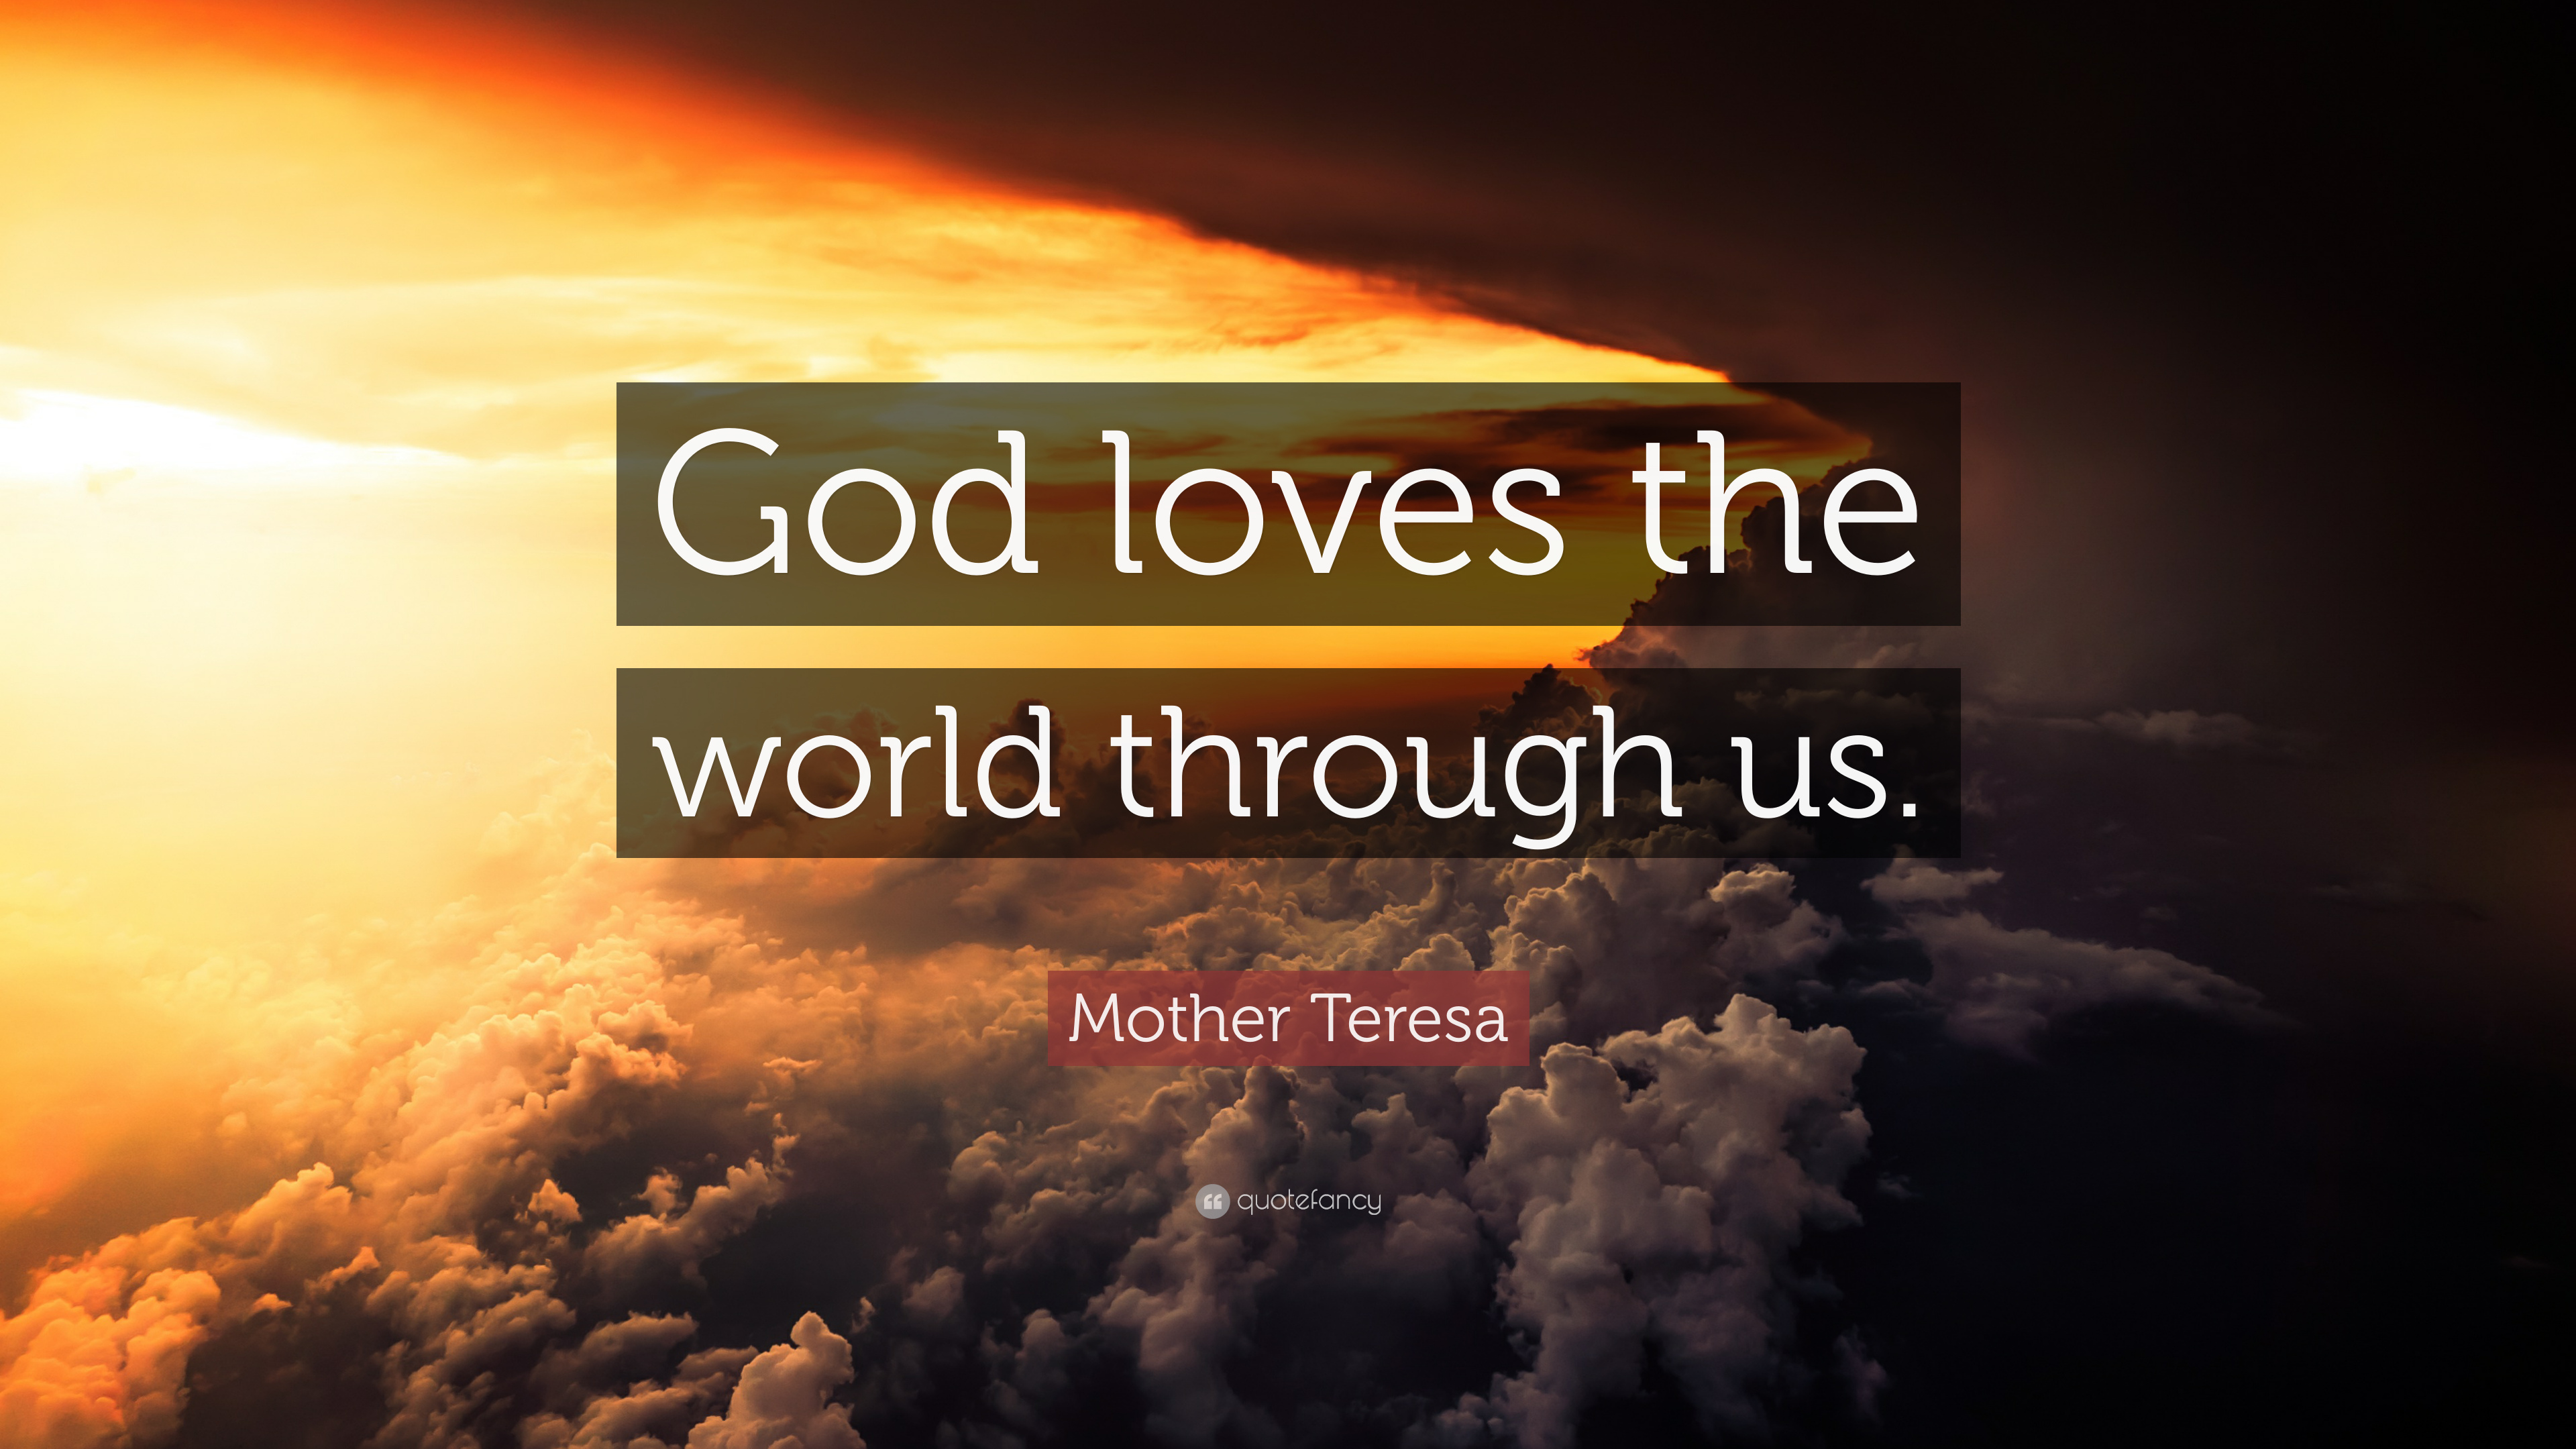 3730232-Mother-Teresa-Quote-God-loves-the-world-through-us